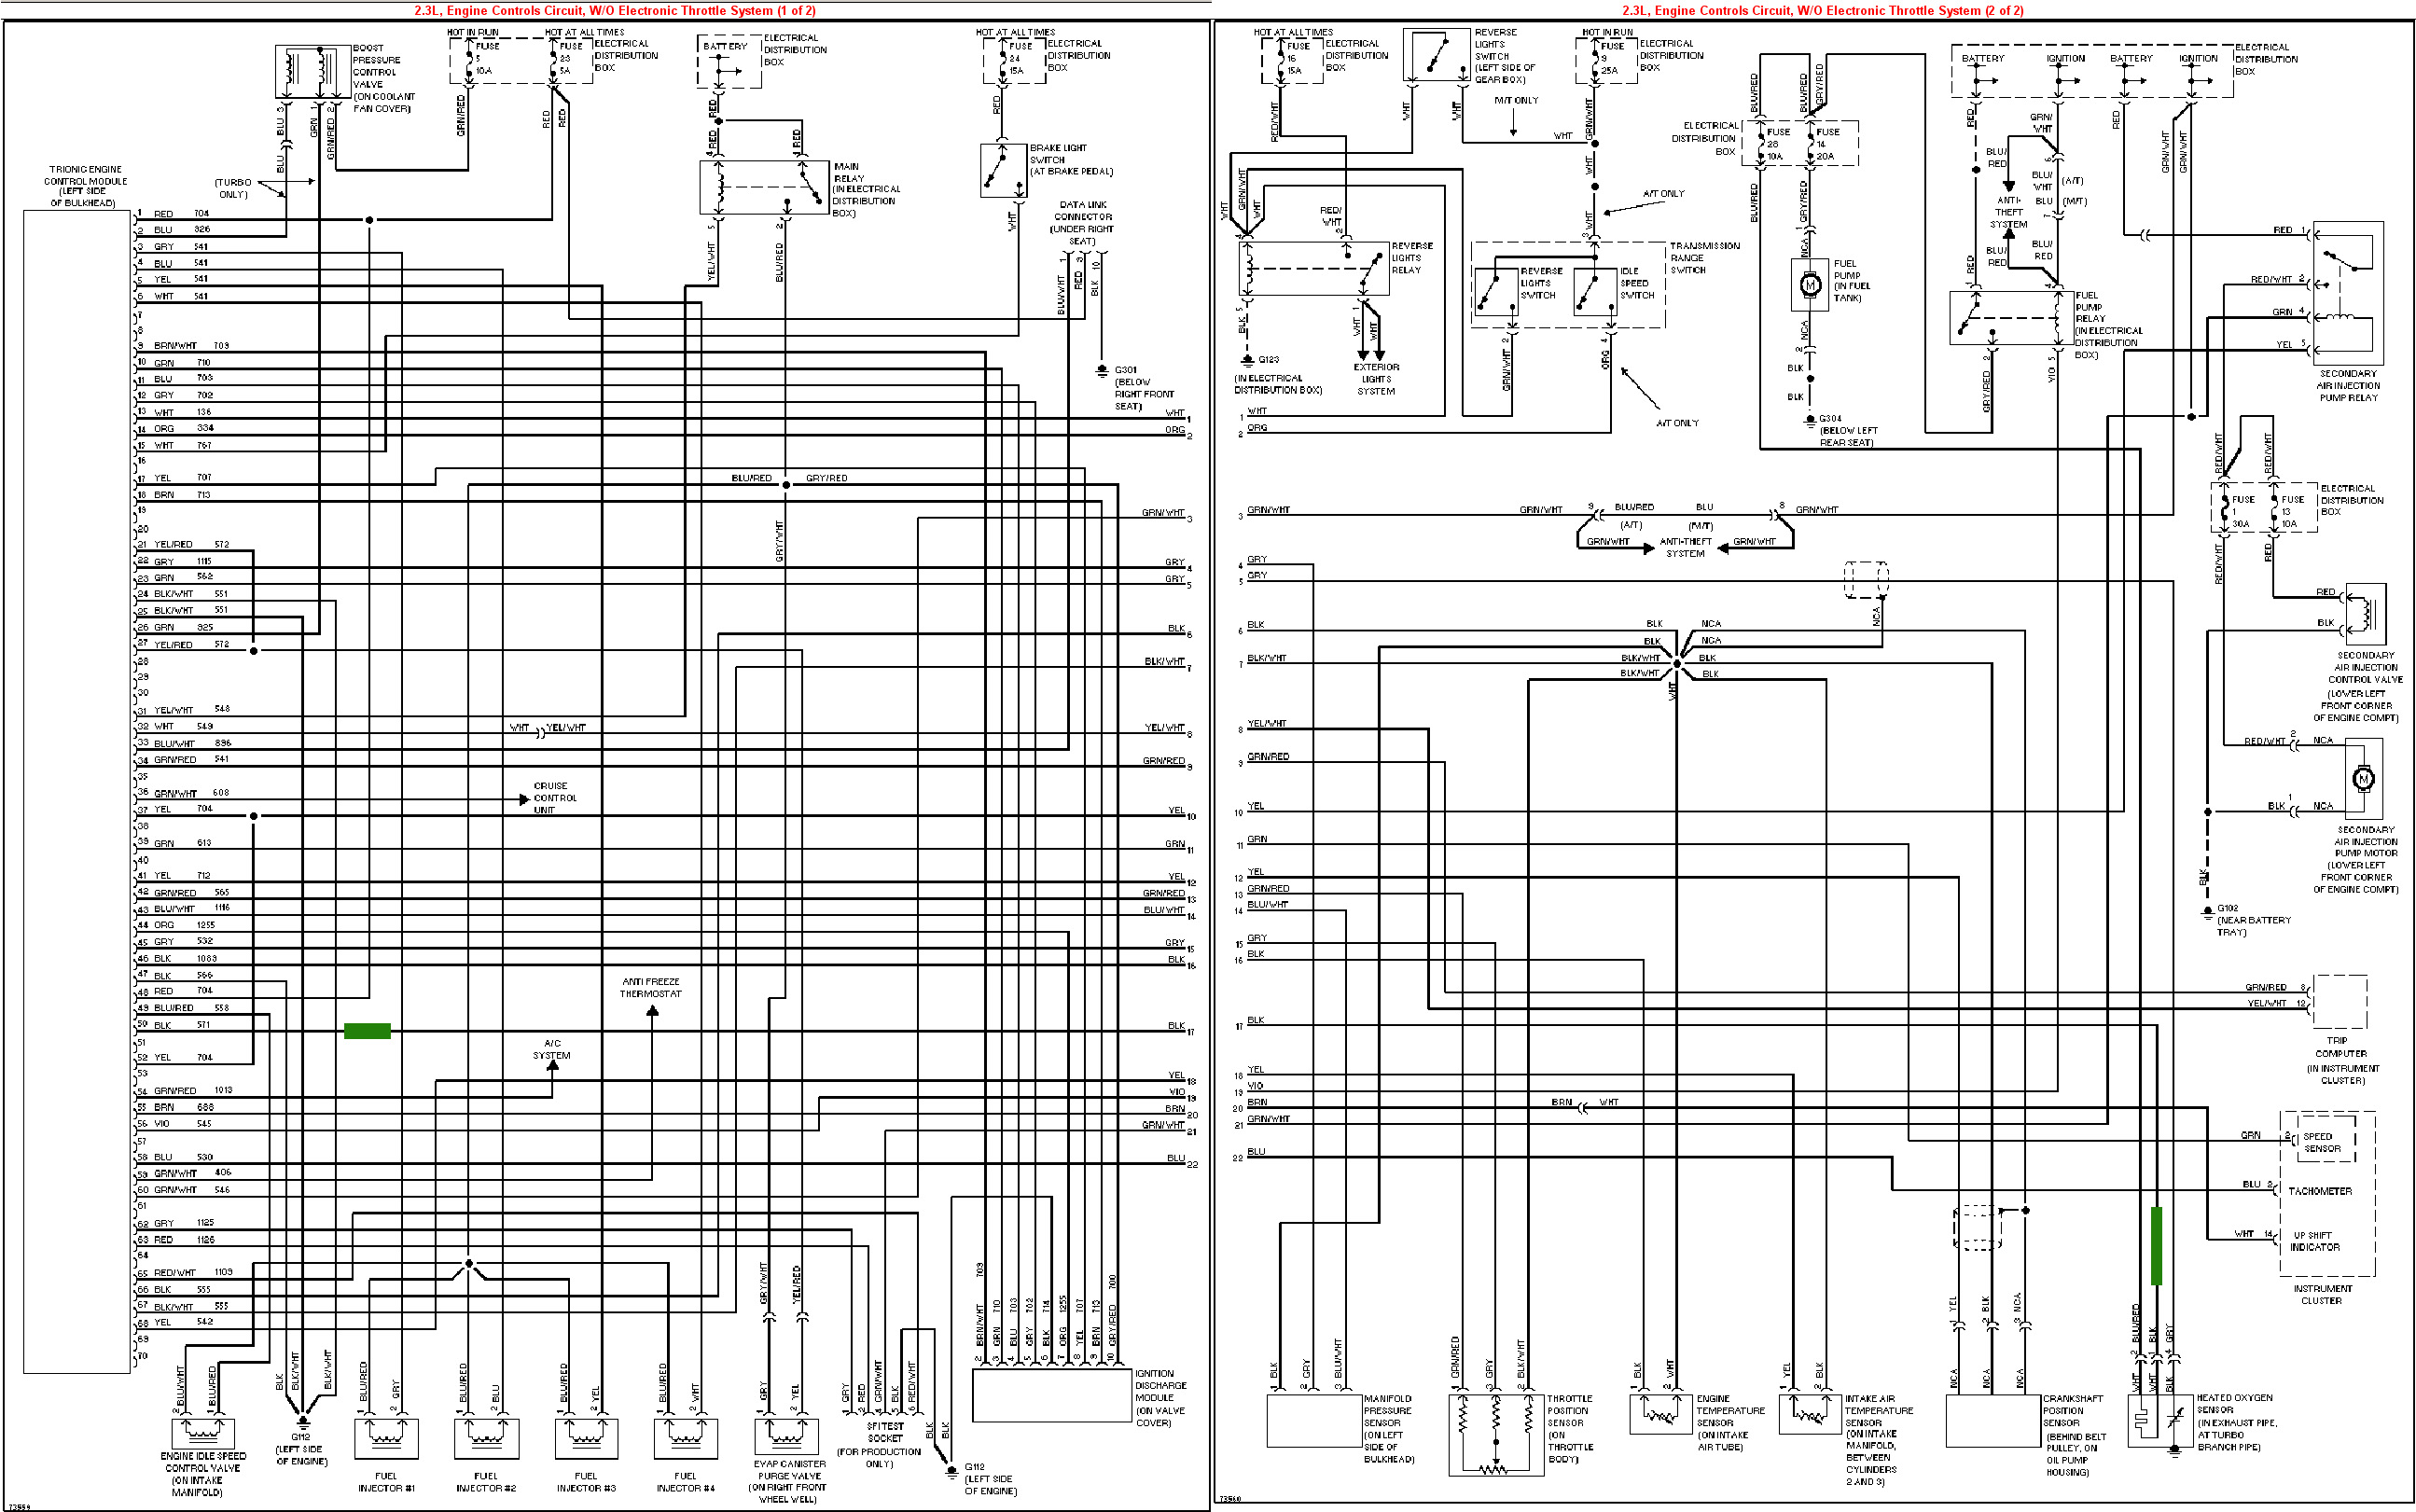 2003 saab 9 3 wiring diagram another blog about wiring diagram u2022 rh ok2  infoservice ru 2004 saab 9-3 wiring diagram saab 9-3 wiring diagram pdf